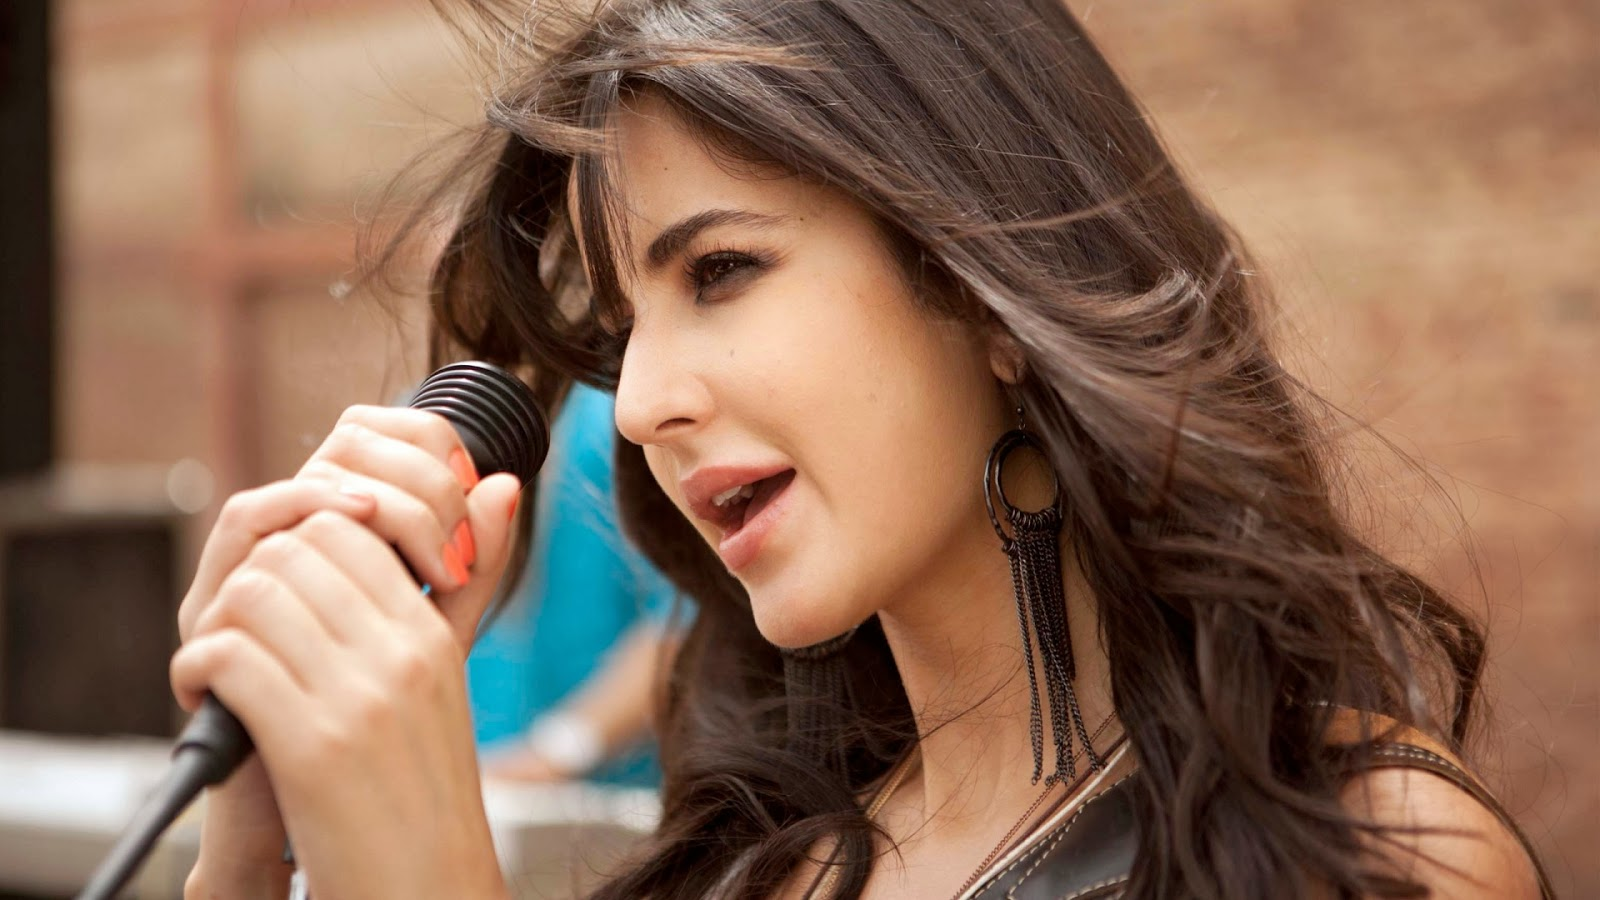 hd wallpapers: katrina kaif hot hd wallpapers 2013-14